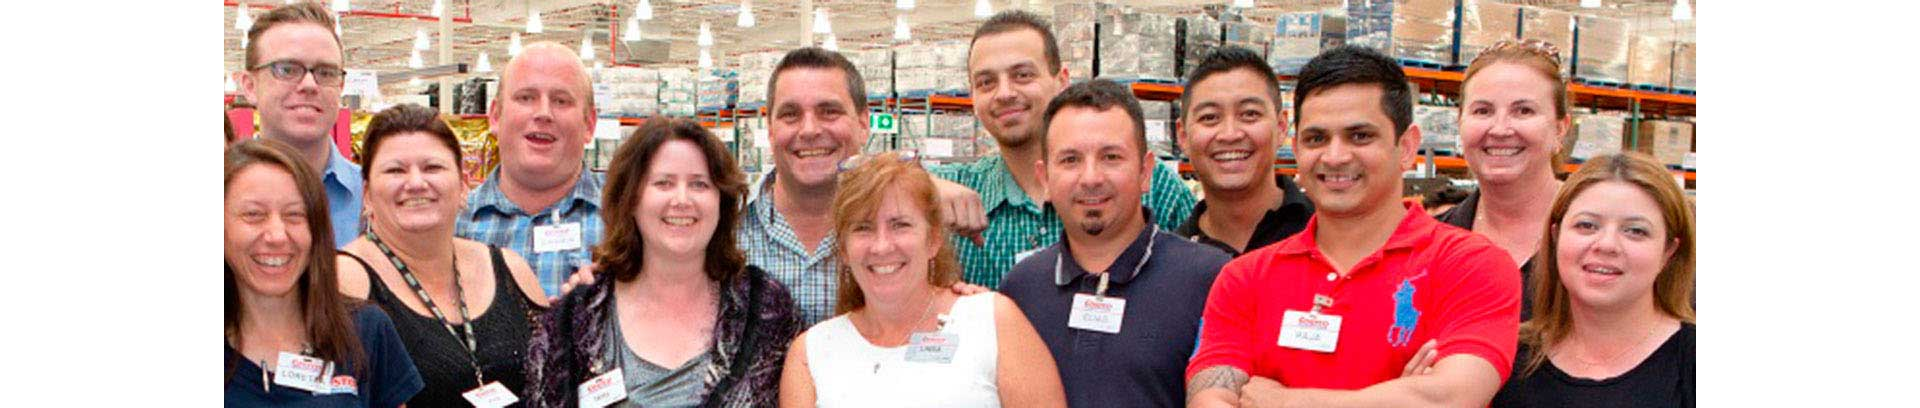 Headshots Of The Costco Team